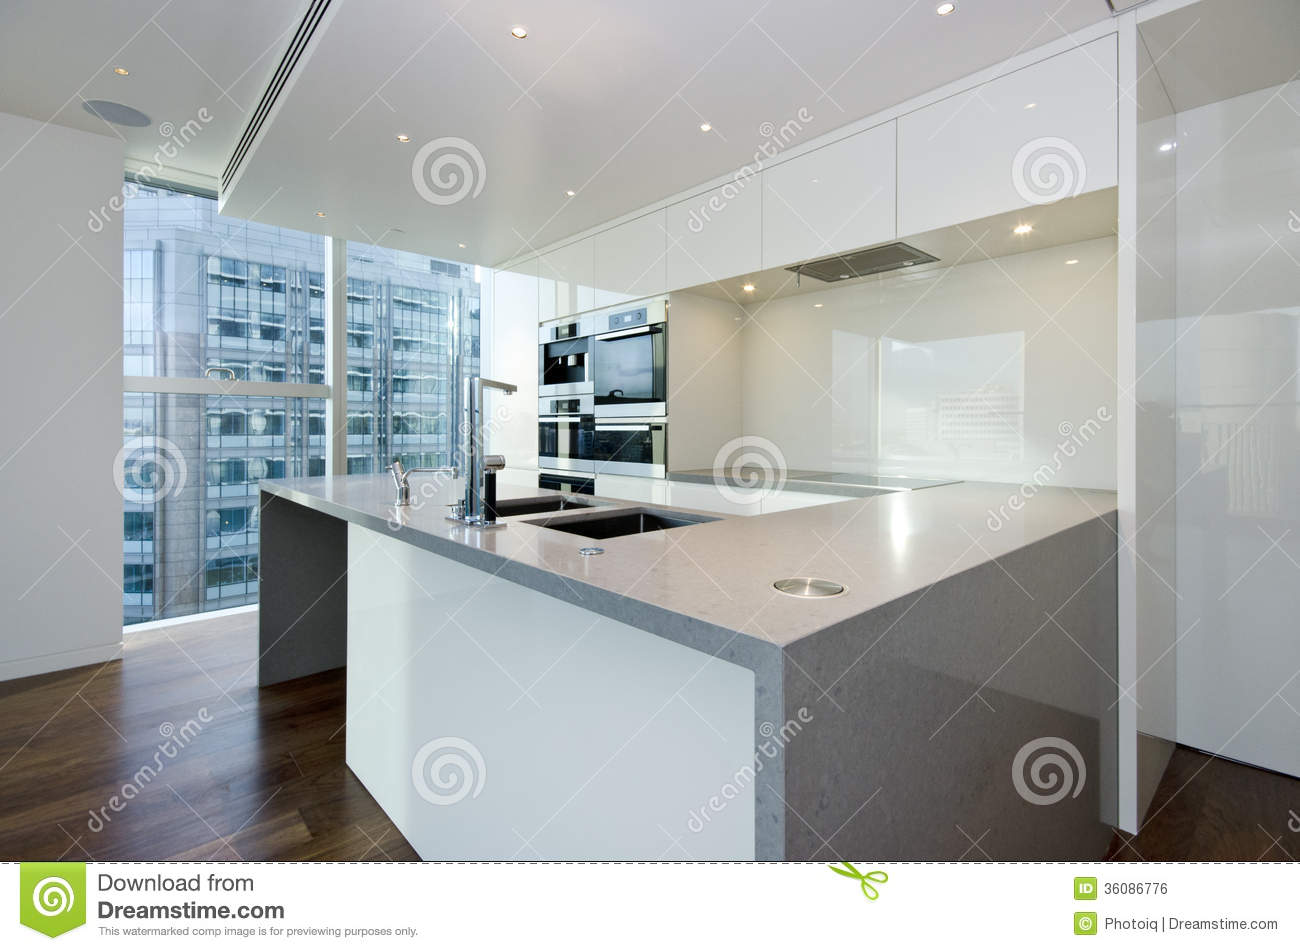 Top Kitchen Contemporary Kitchen With Top Spec Appliances Royalty Free Stock